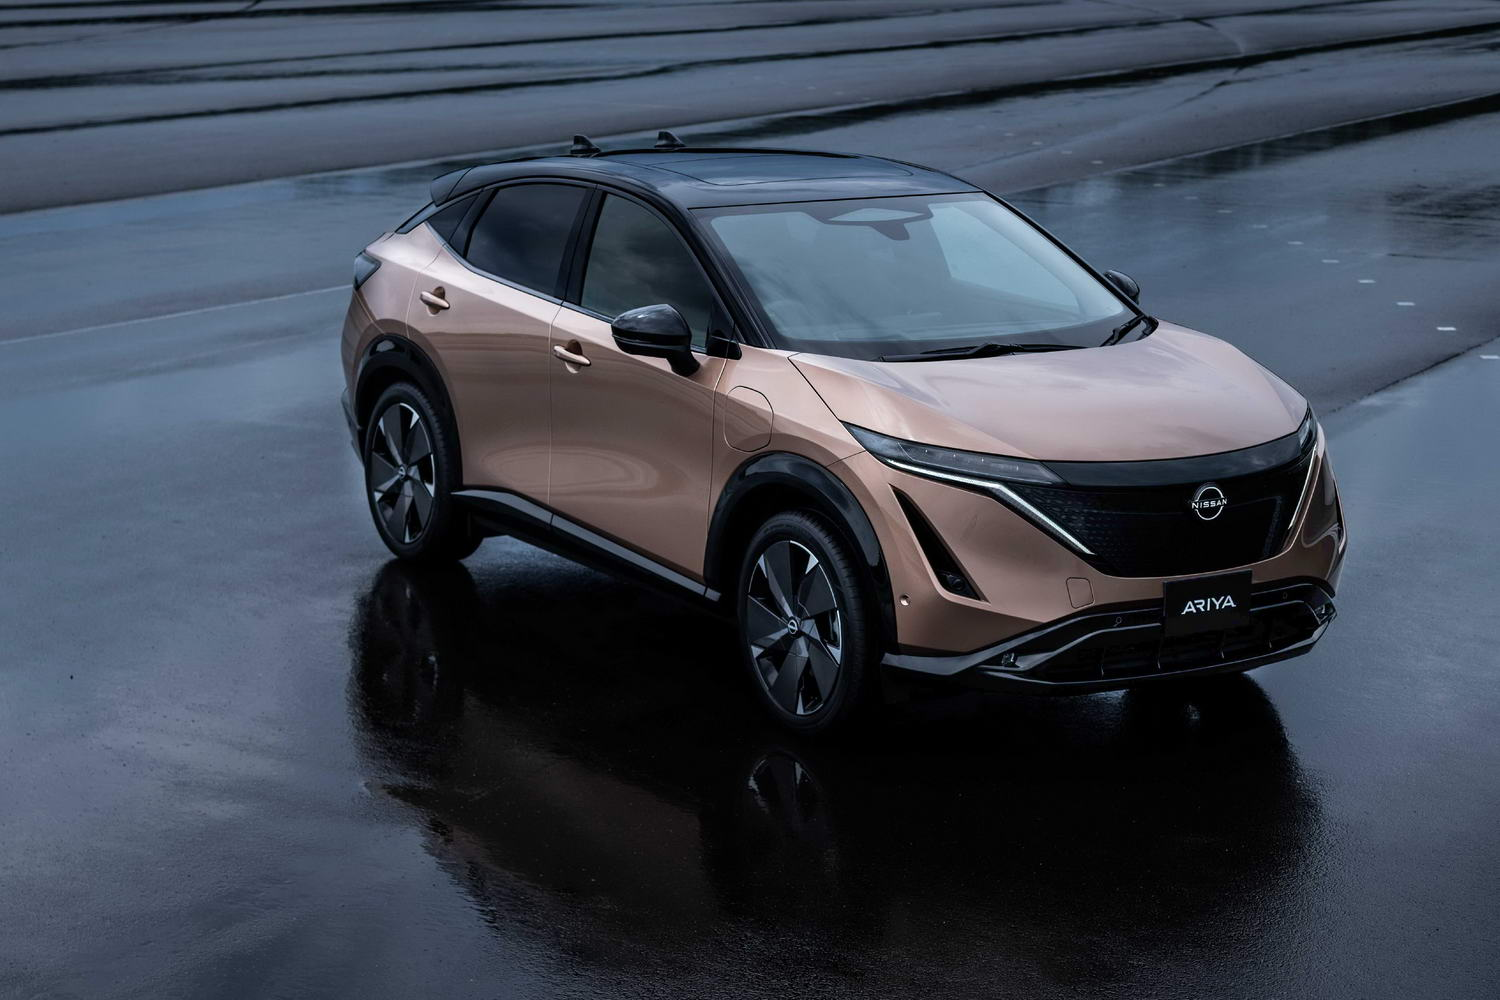 Car News | Nissan Ariya is new electric coupe-crossover | CompleteCar.ie